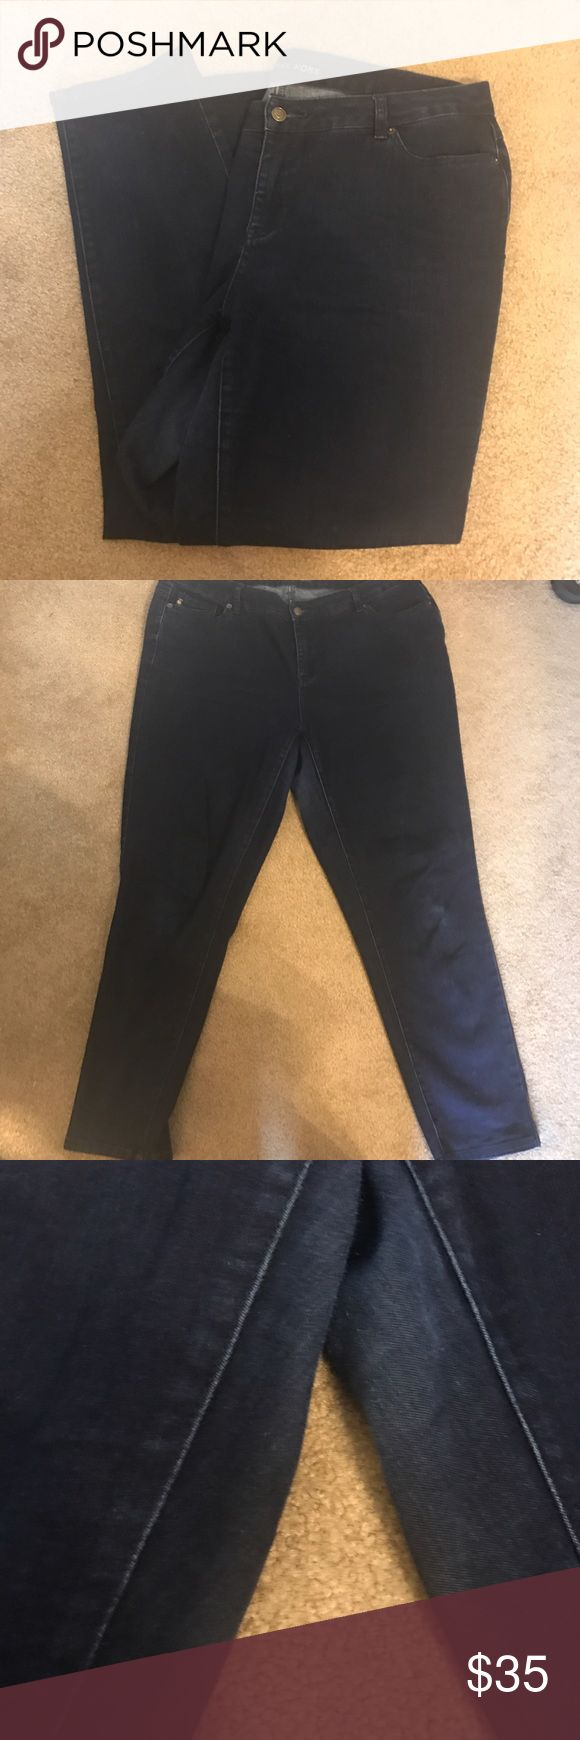 """Size 16W Michael Kors Jeans Size 16W Michael Kors Jeans. Good used condition. Normal wear between legs. """"Michael Kors"""" hardware on back loose. Michael Kors Jeans Skinny"""